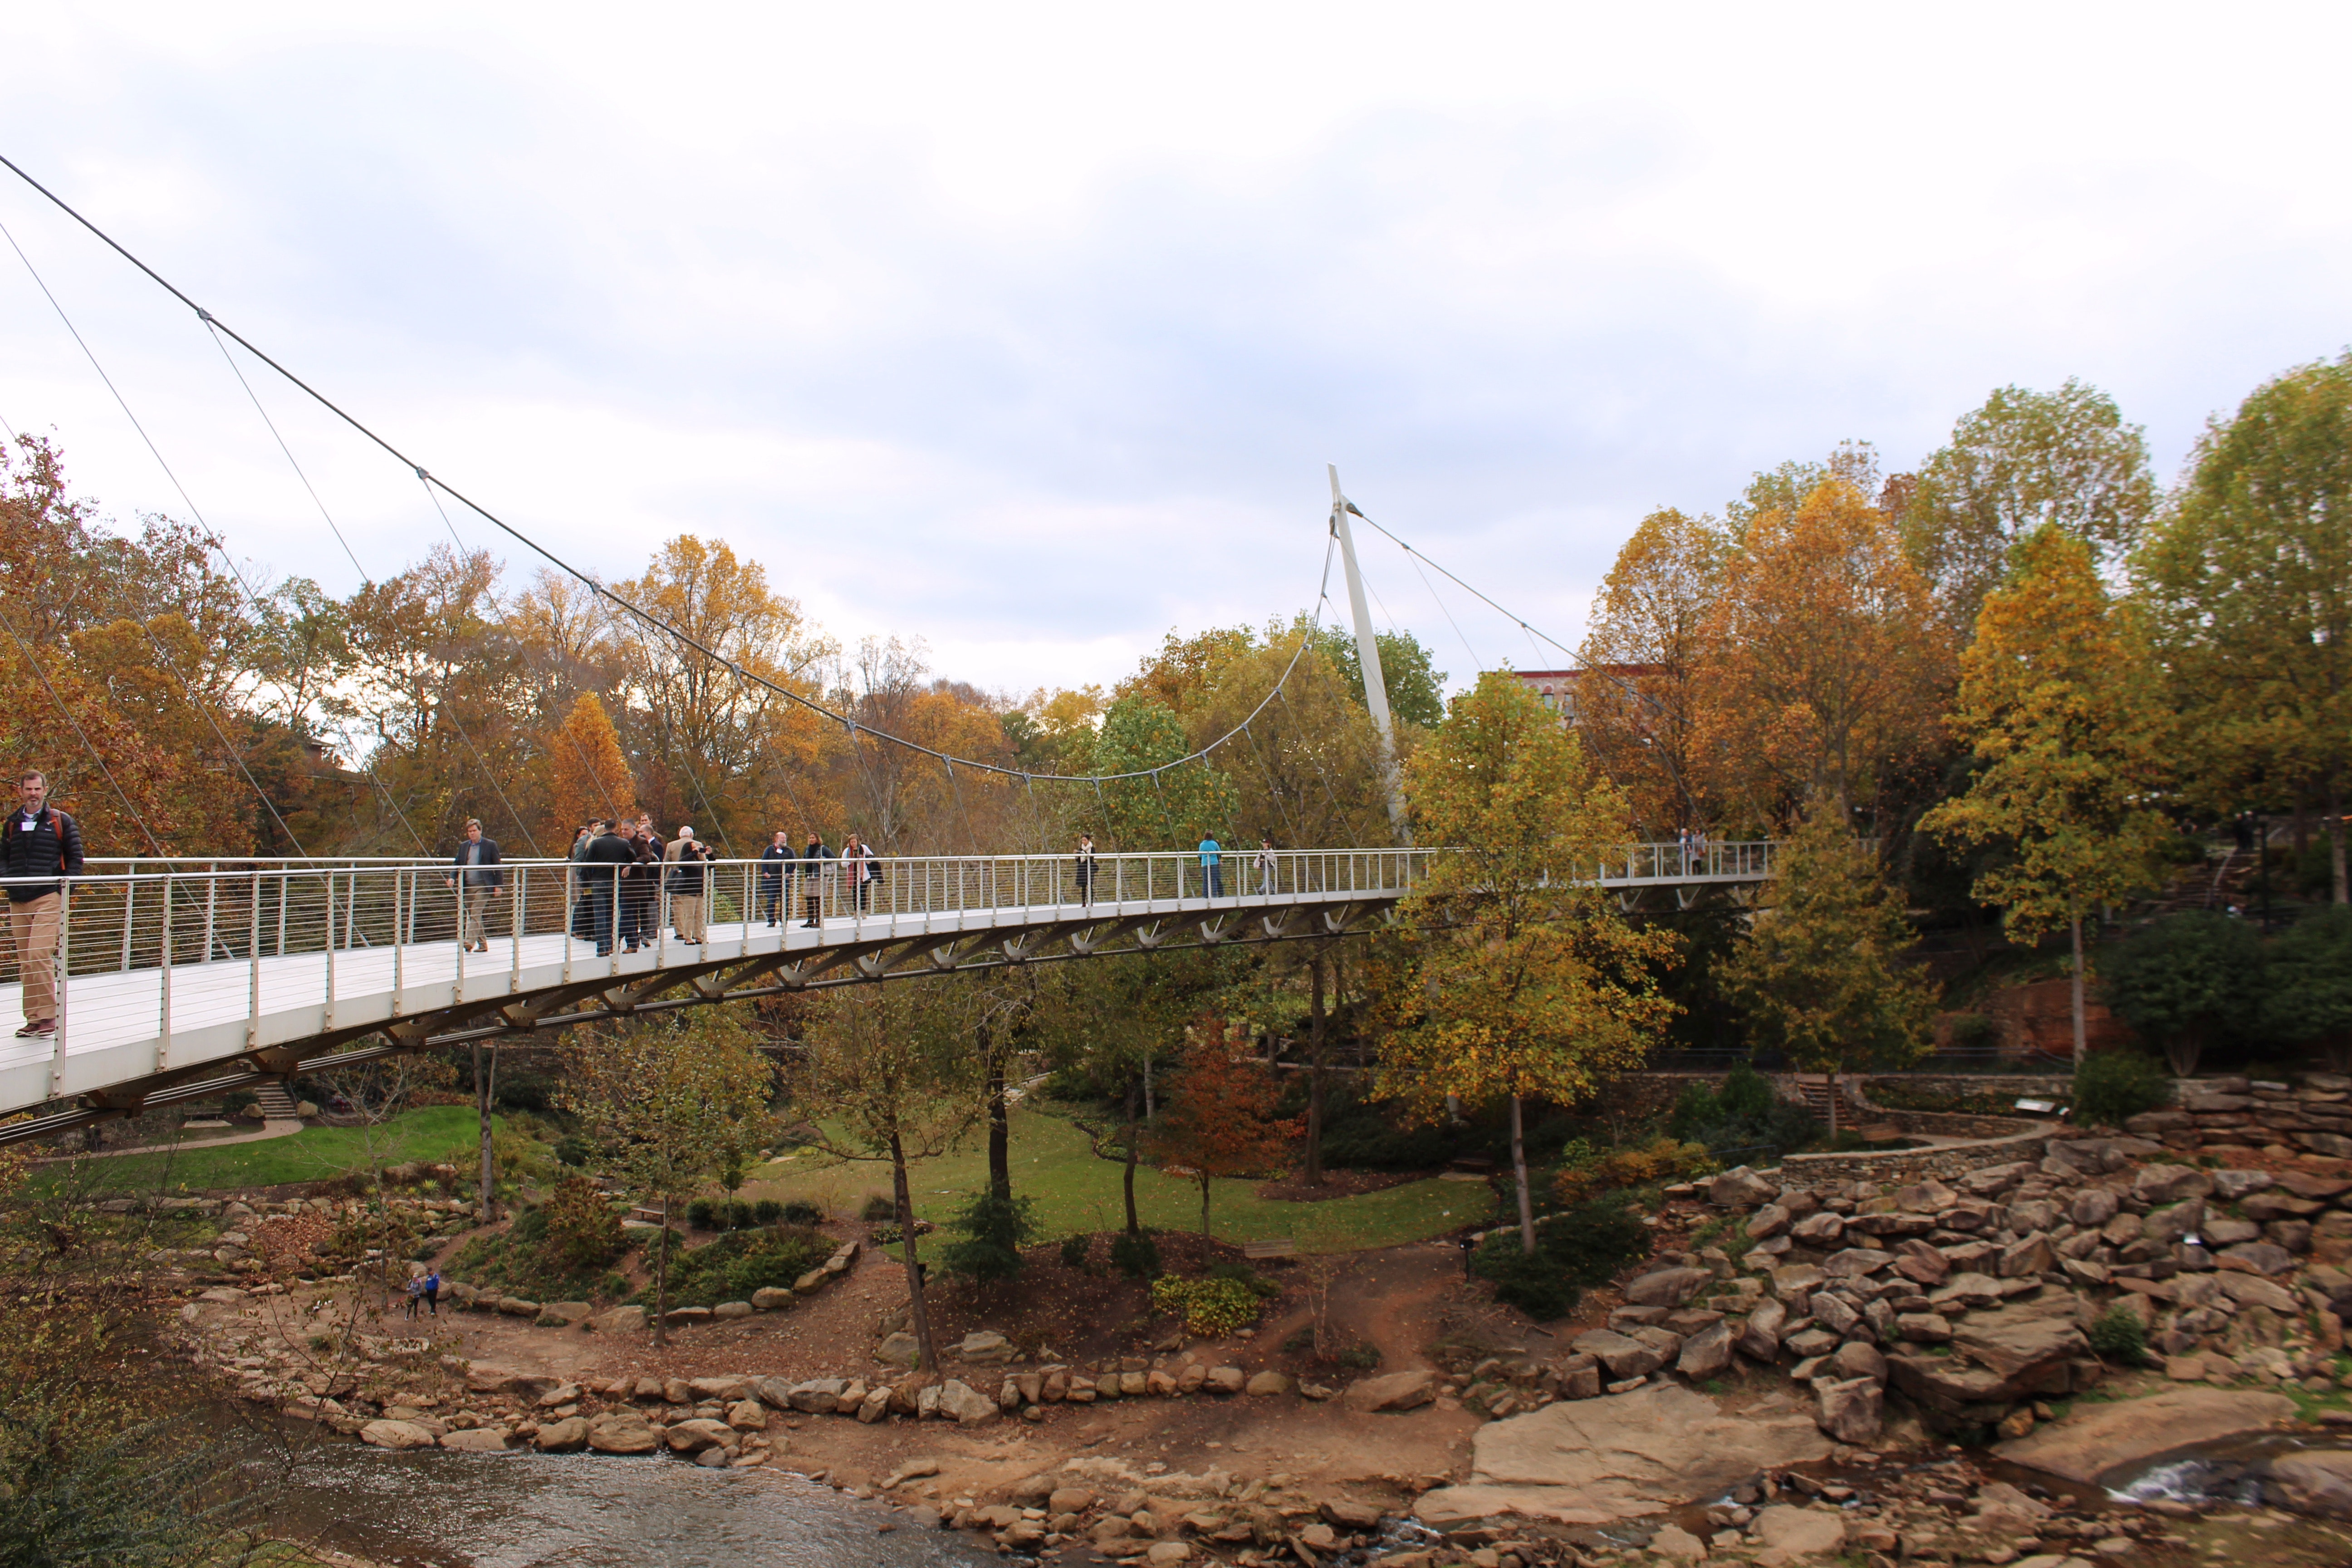 <p><em>Parkland in Greenville was reclaimed by removing a highway bridge, revealing the waterfall underneath, and developing people-friendly park features, including a new pedestrian bridge that anchors the transformed space.</em></p>